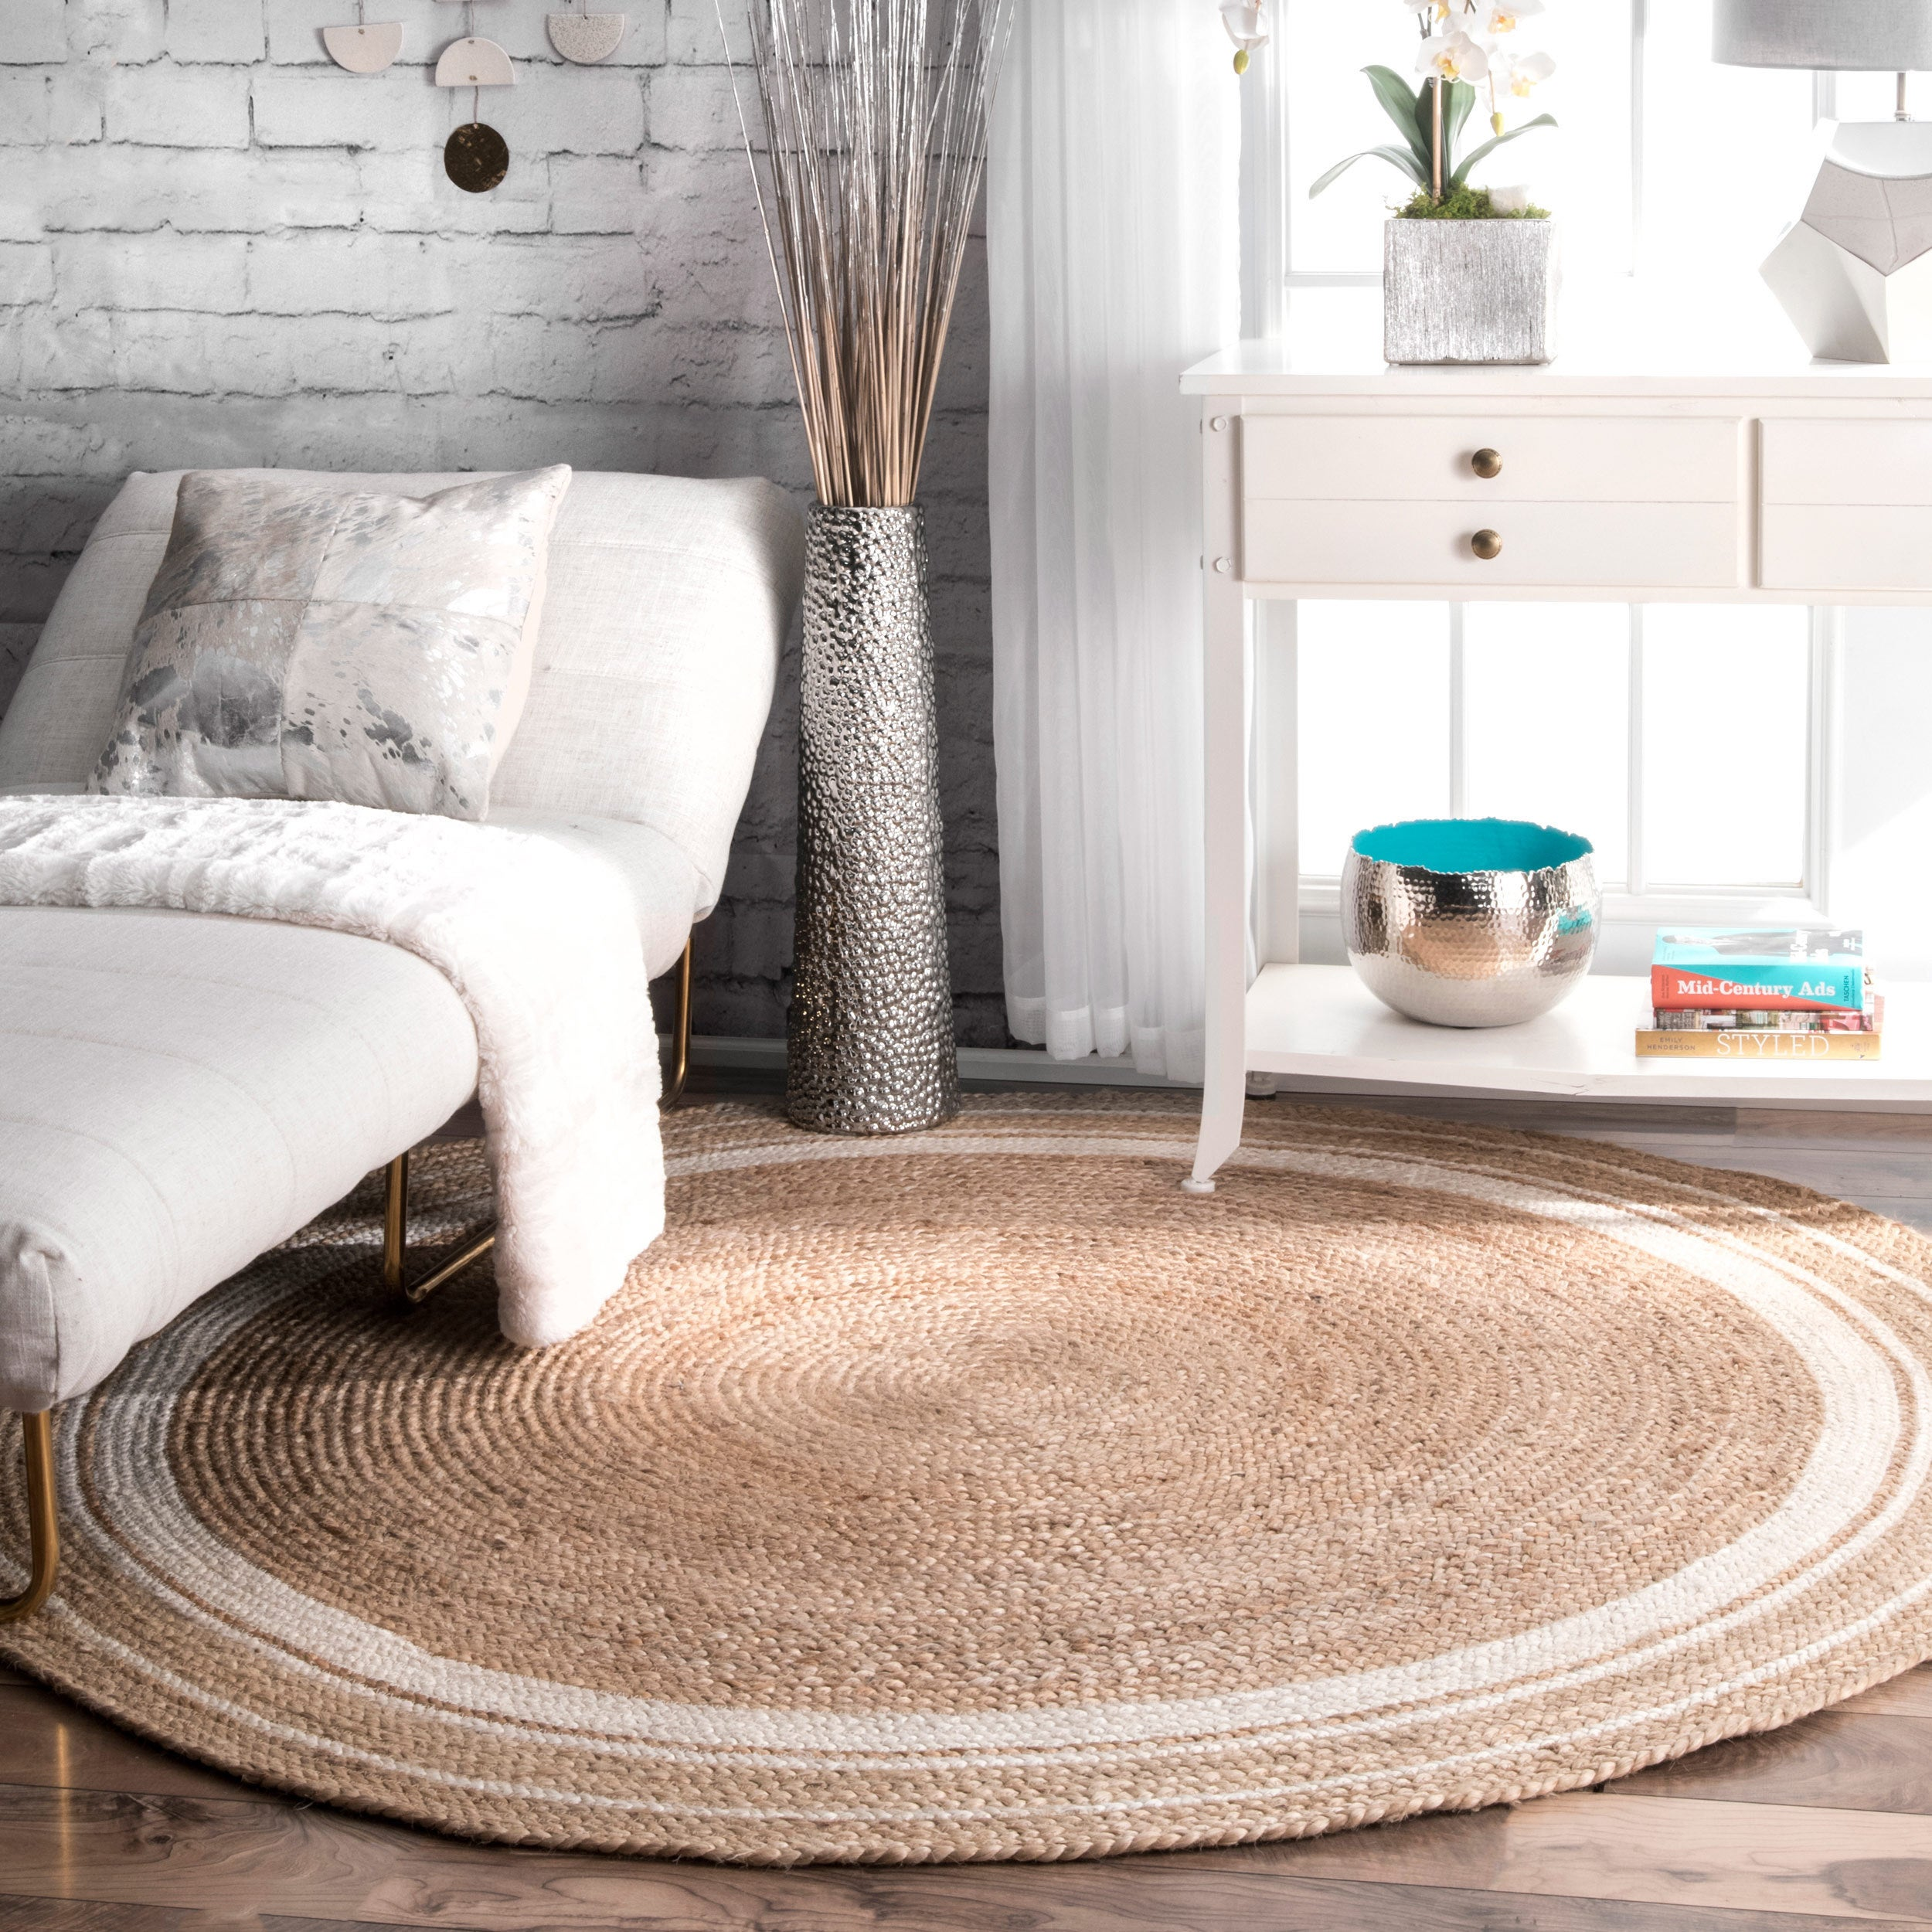 Nuloom braided natural fiber jute round rug 6